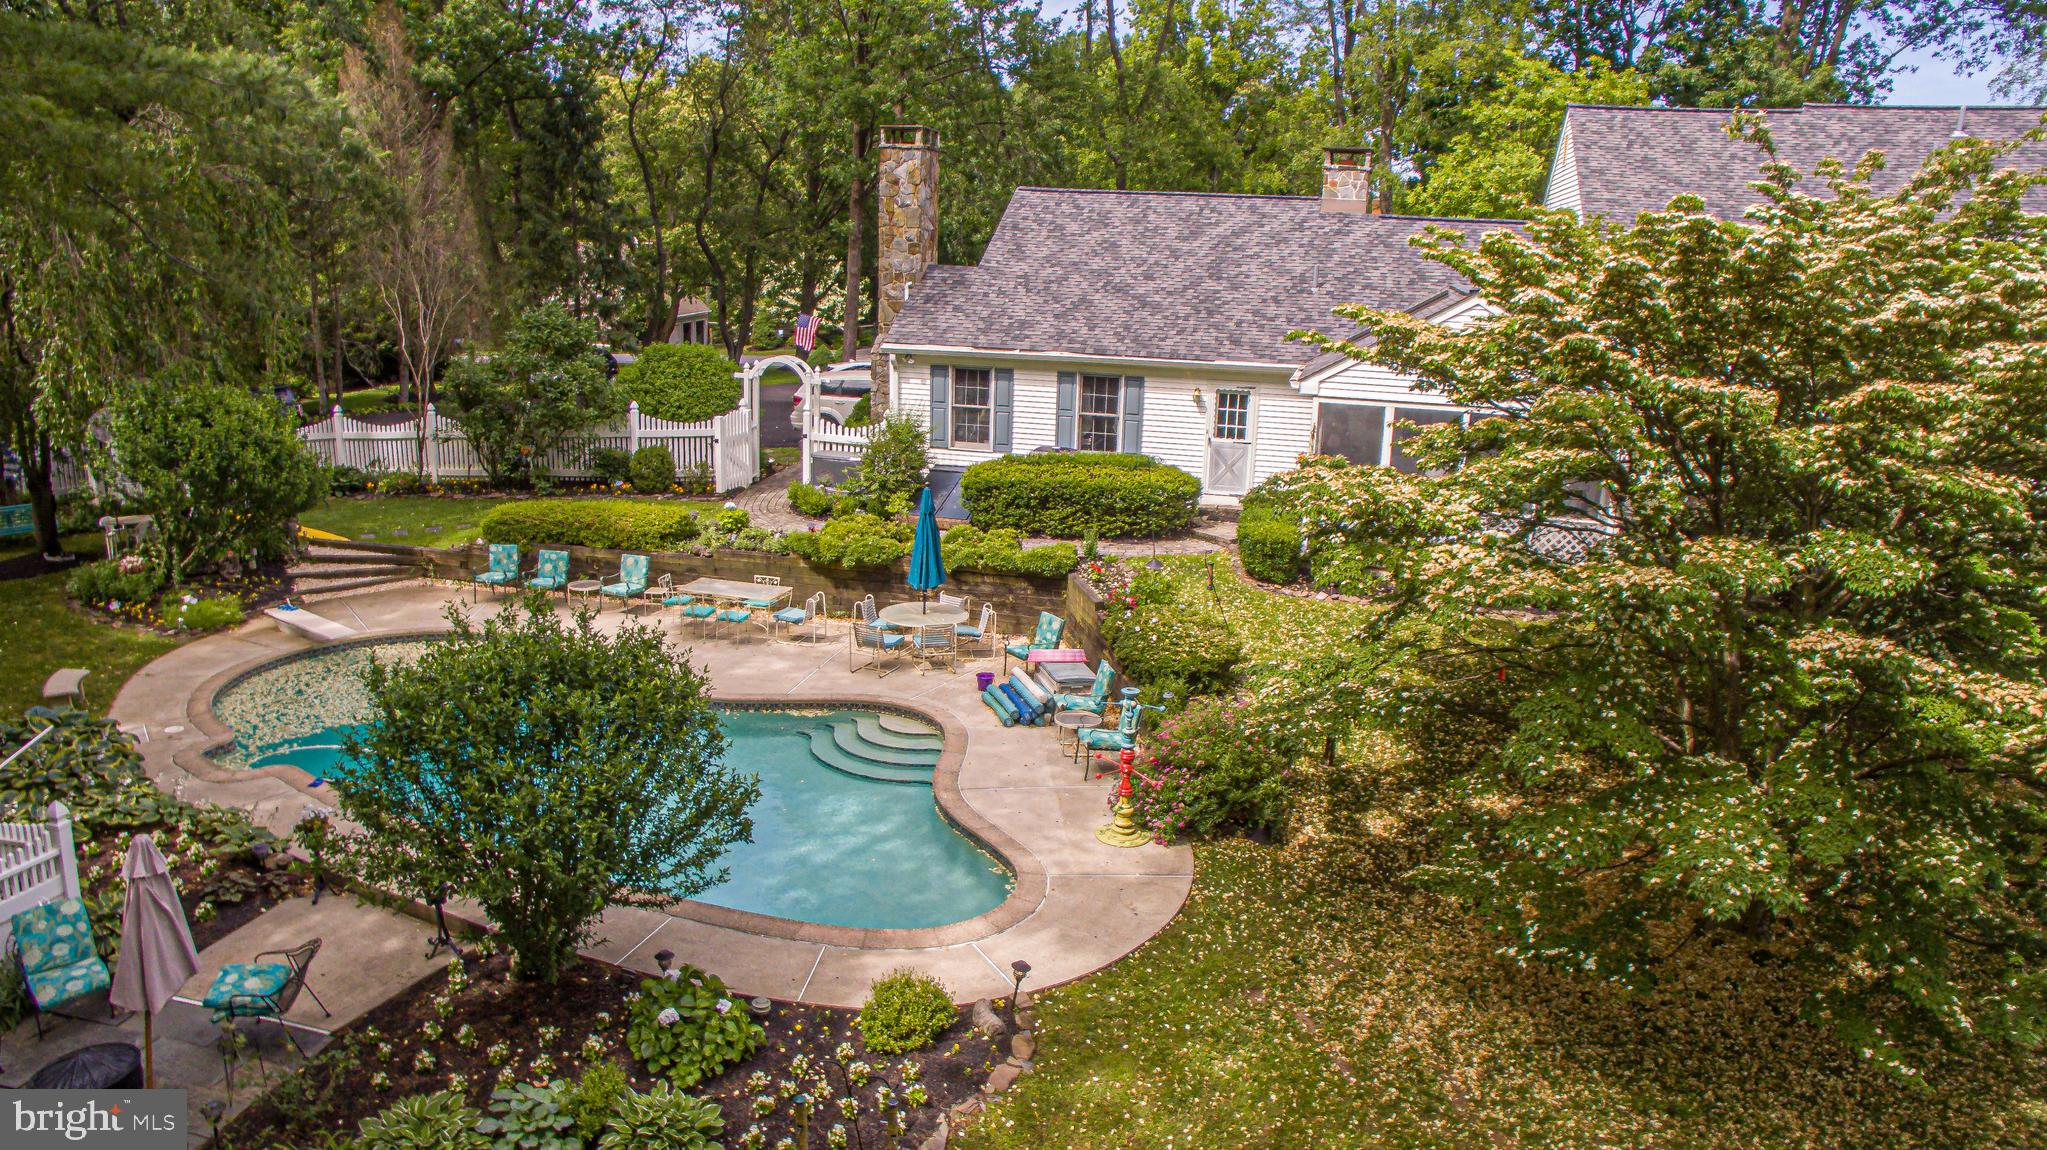 Homes for Sale with In-Law Au Pair Suite in Chester County Pennsylvania